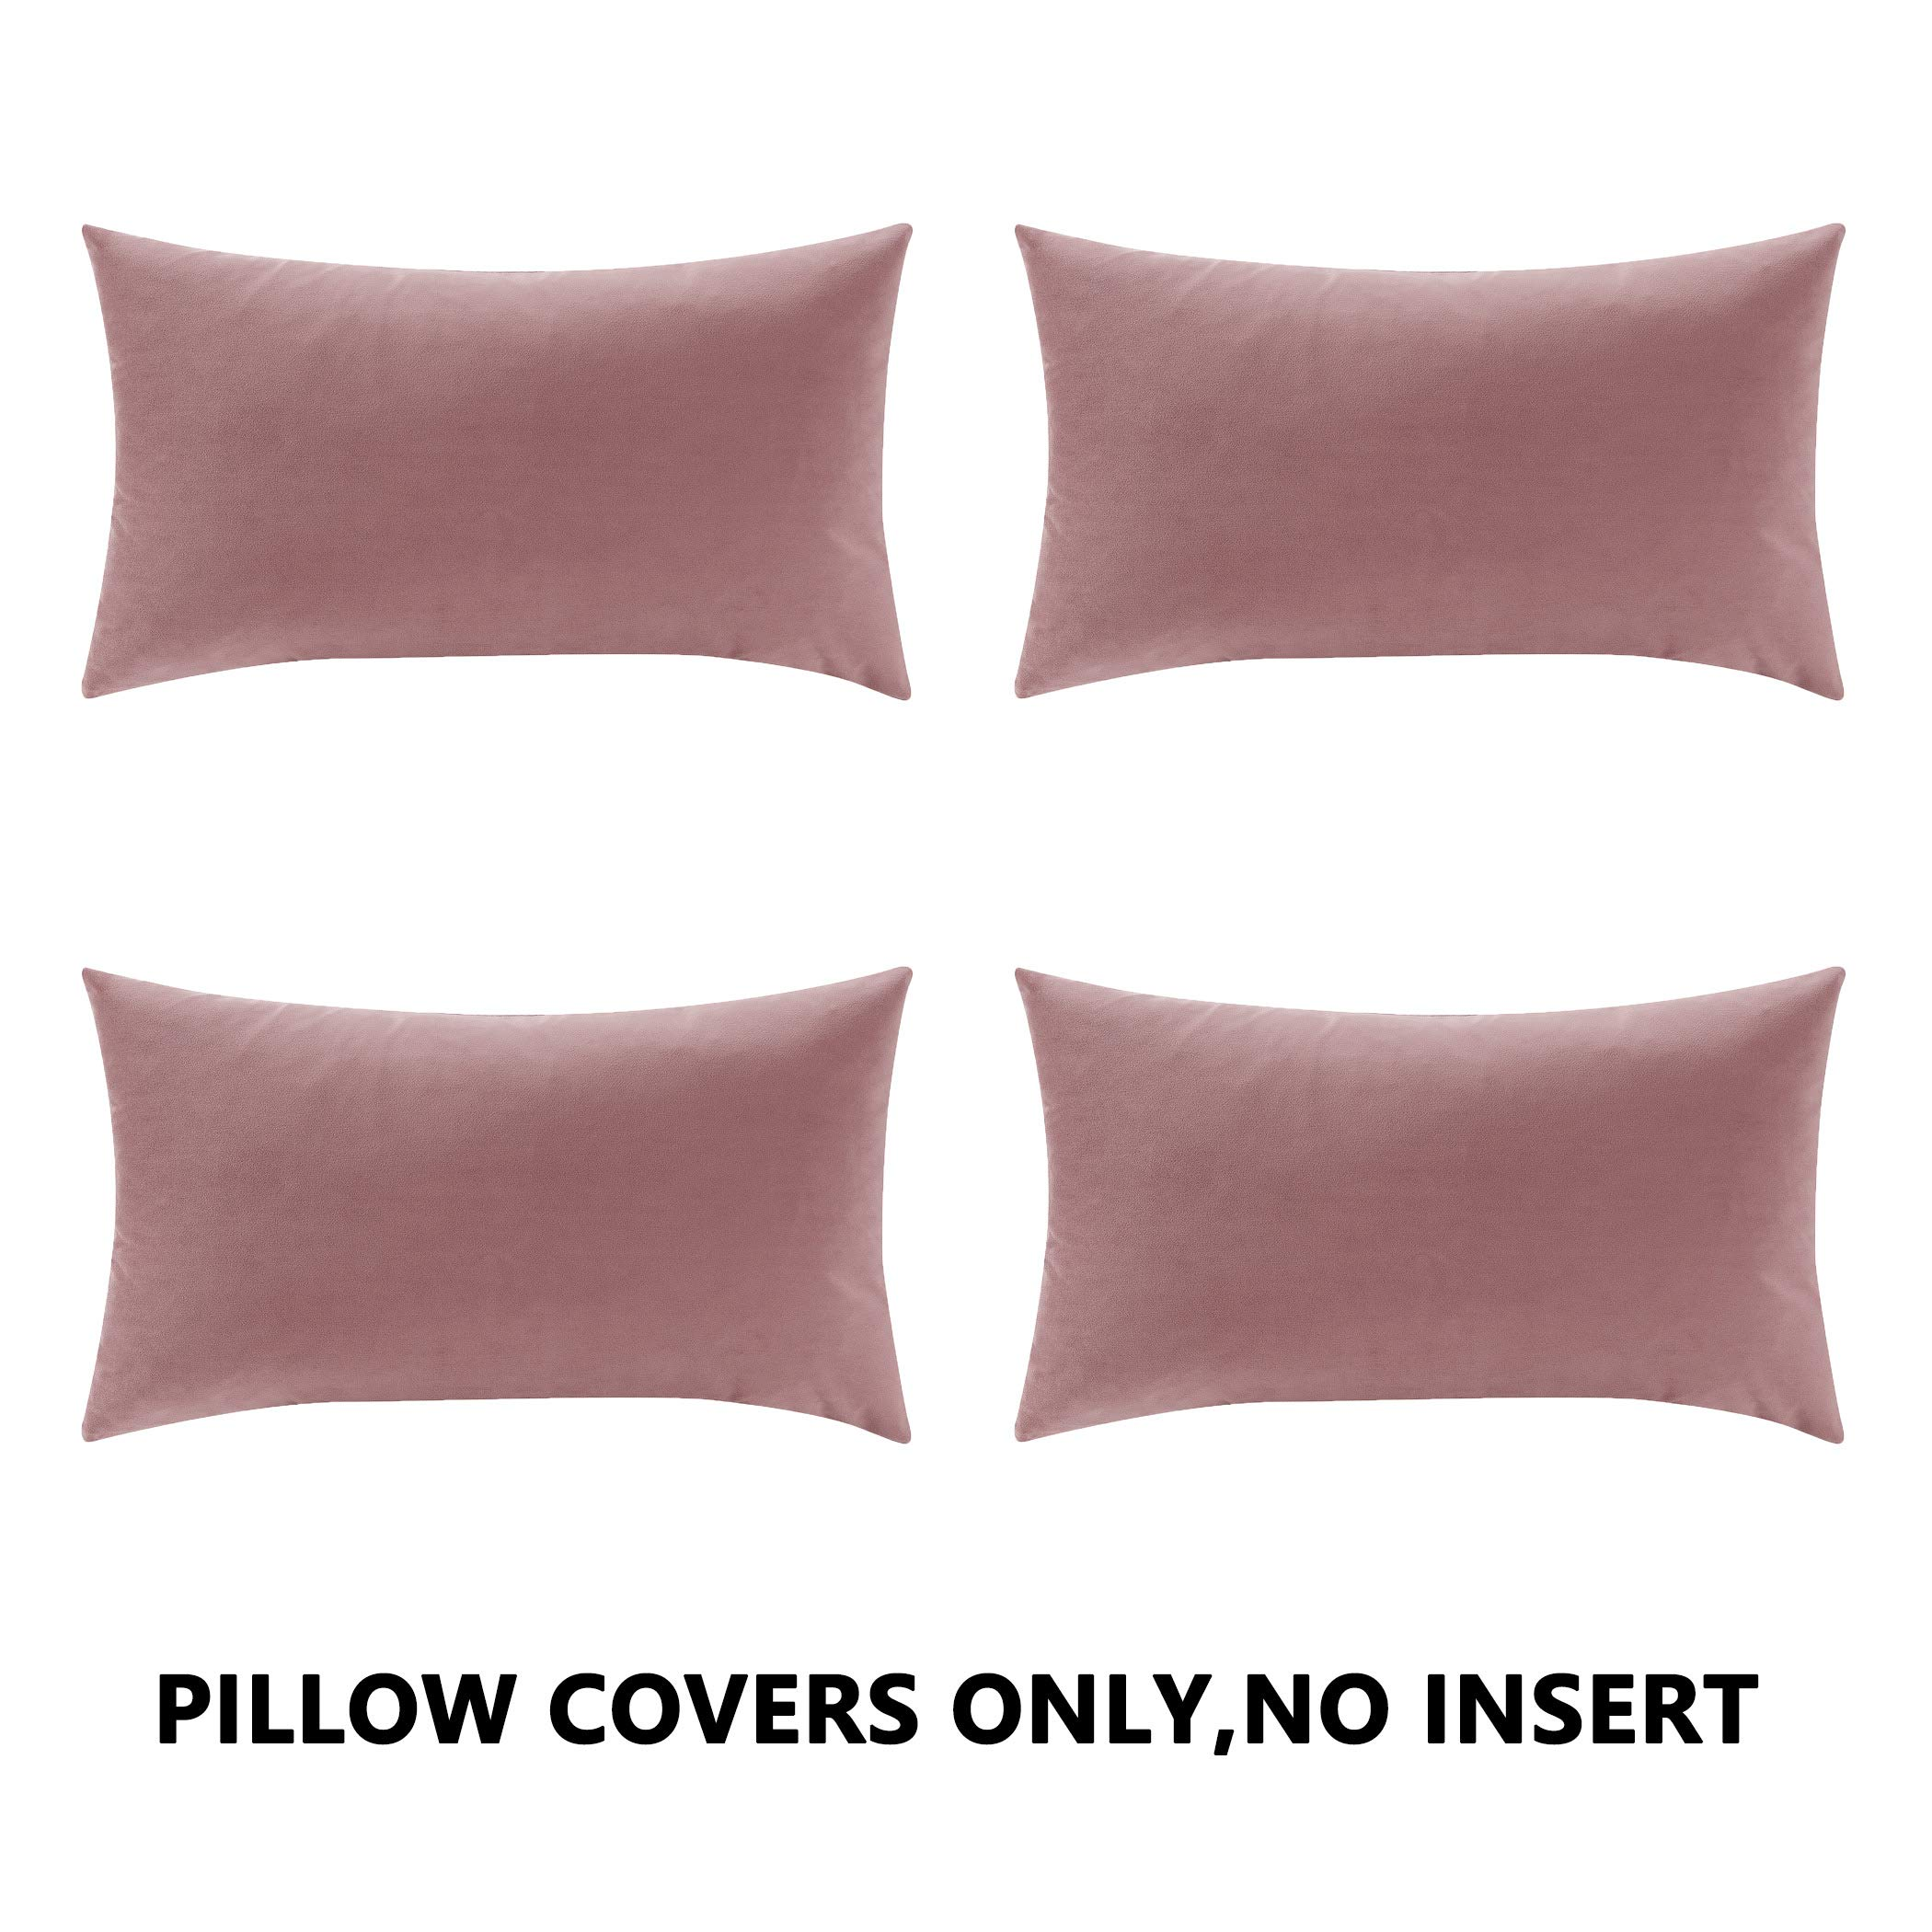 COMFORTLAND New Year/Christmas Decorative Pillow Covers 12x20 Dusty Rose Pink: 4 Pack Cozy Soft Velvet Rectangular Throw Pillow Cases for Farmhouse Sofa Couch Bed Chair Home Decor Decorations